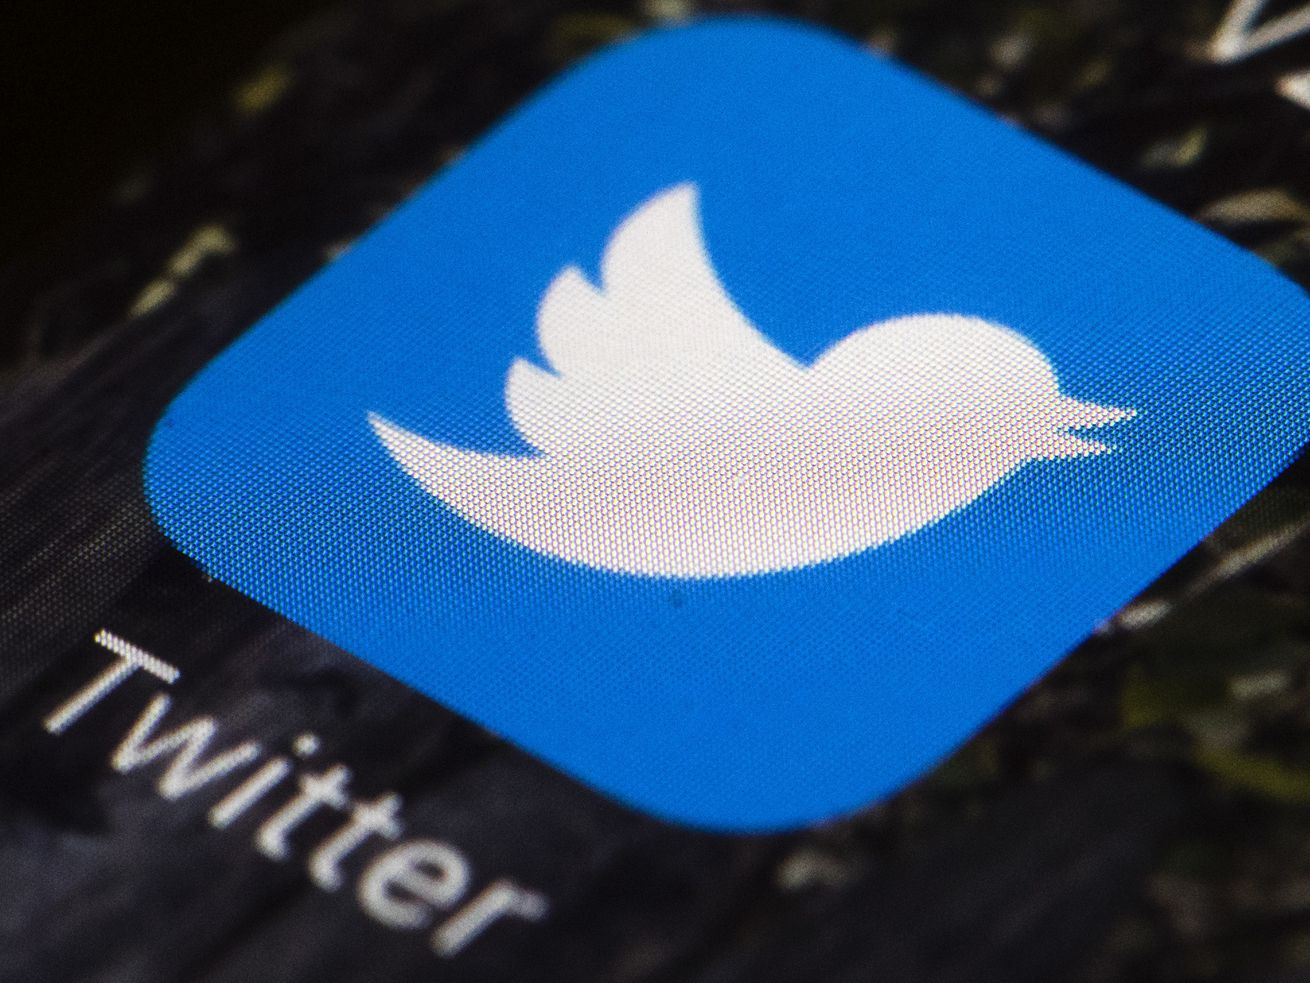 Twitter's new Super Followers feature will give users a chance to a make profit